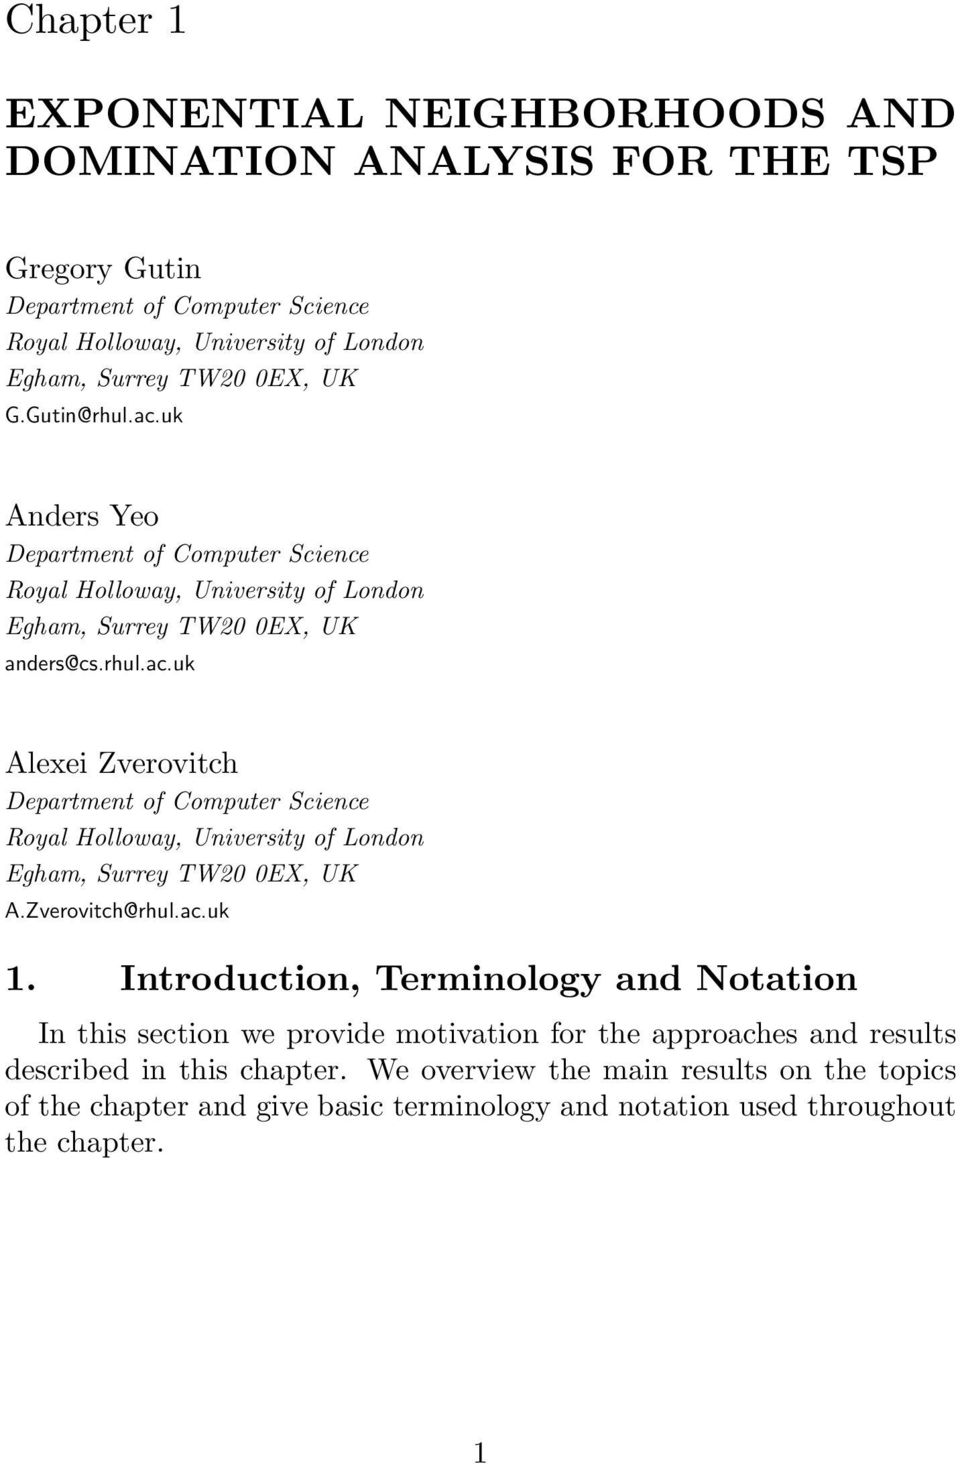 Zverovitch@rhul.ac.uk 1. Introduction, Terminology and Notation In this section we provide motivation for the approaches and results described in this chapter.